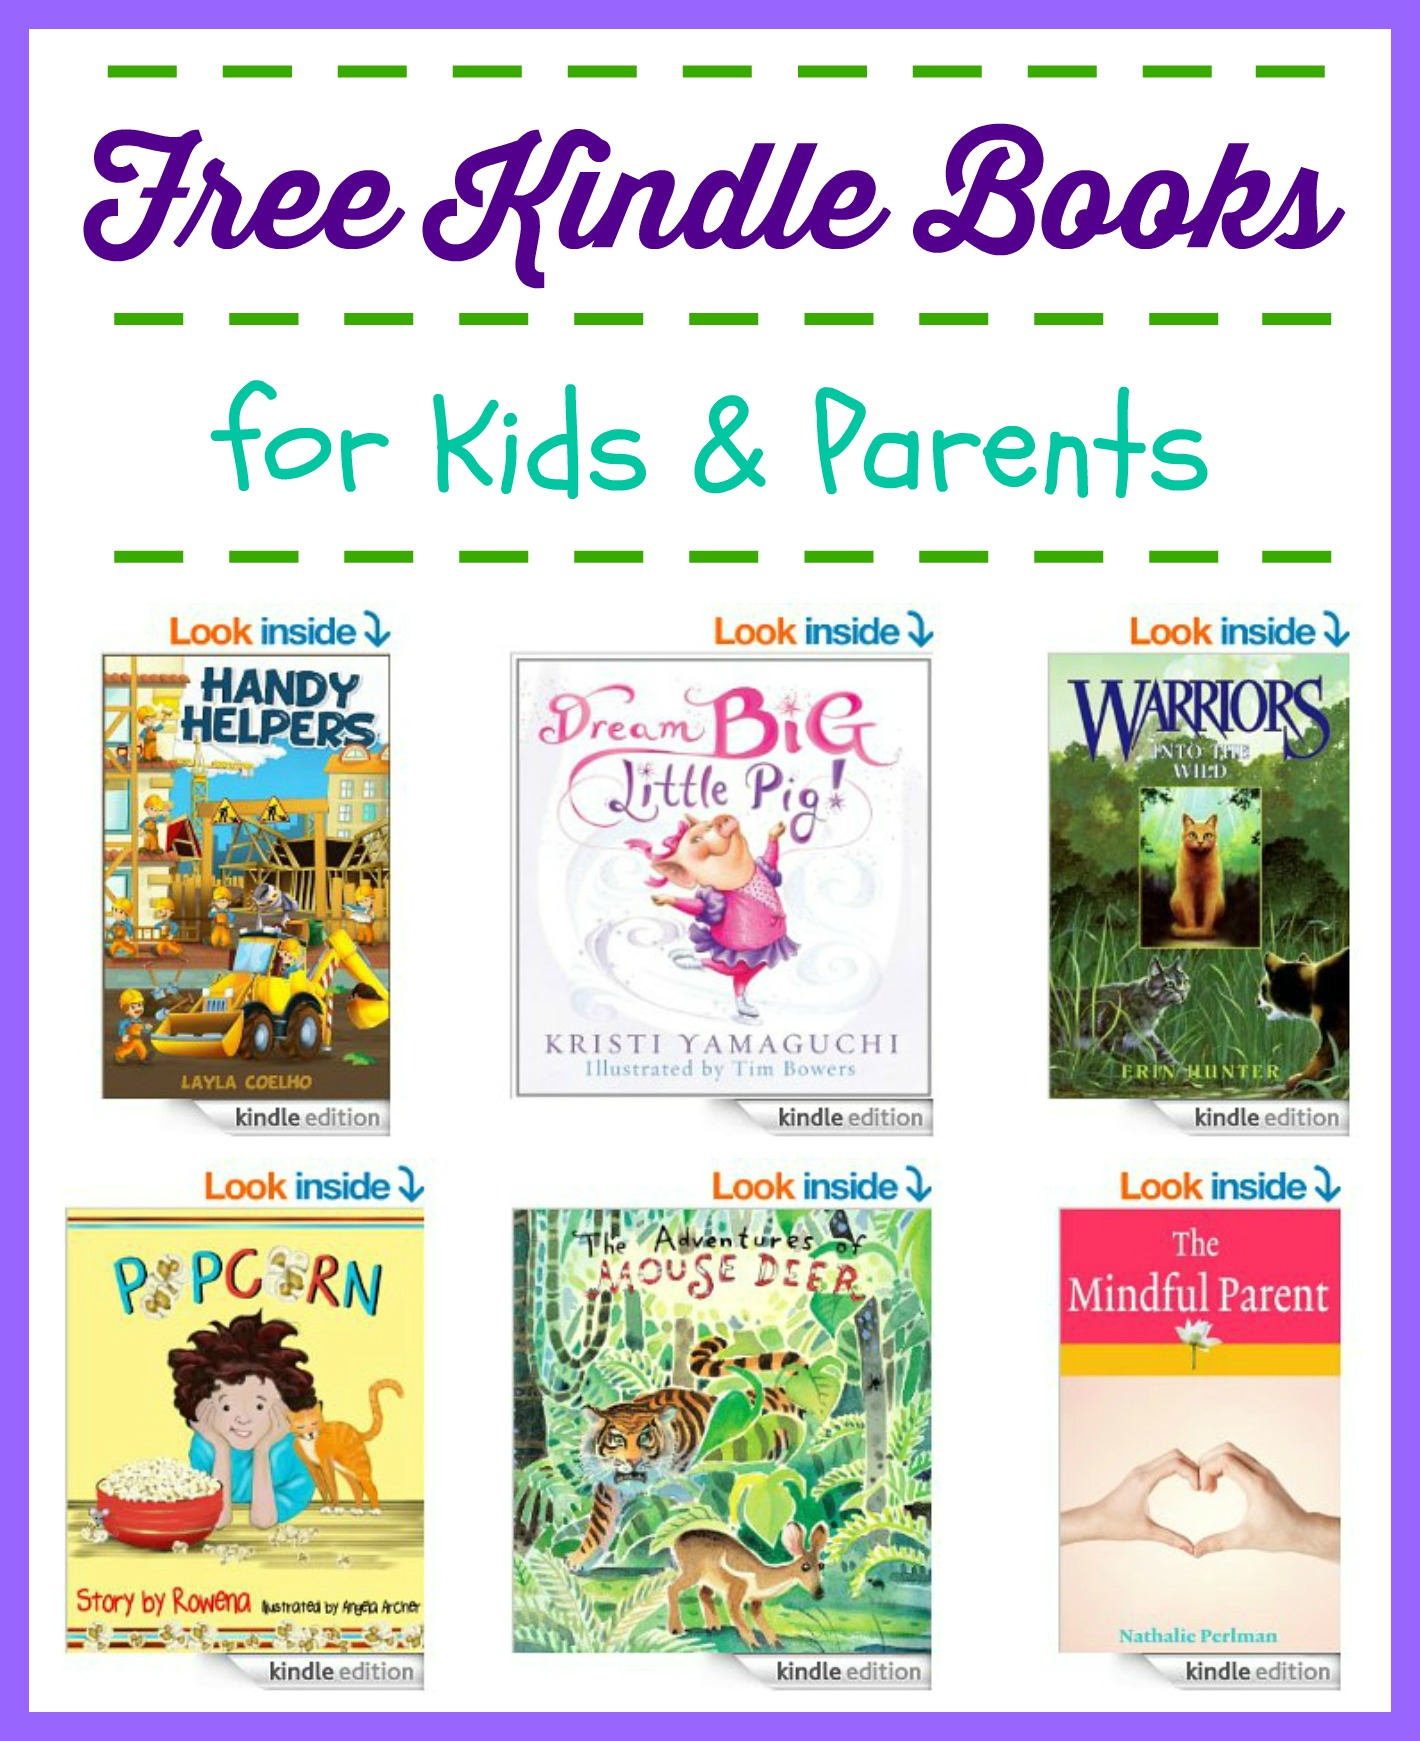 15 Free Kindle Books for Kids & Parents | Free Homeschool ...